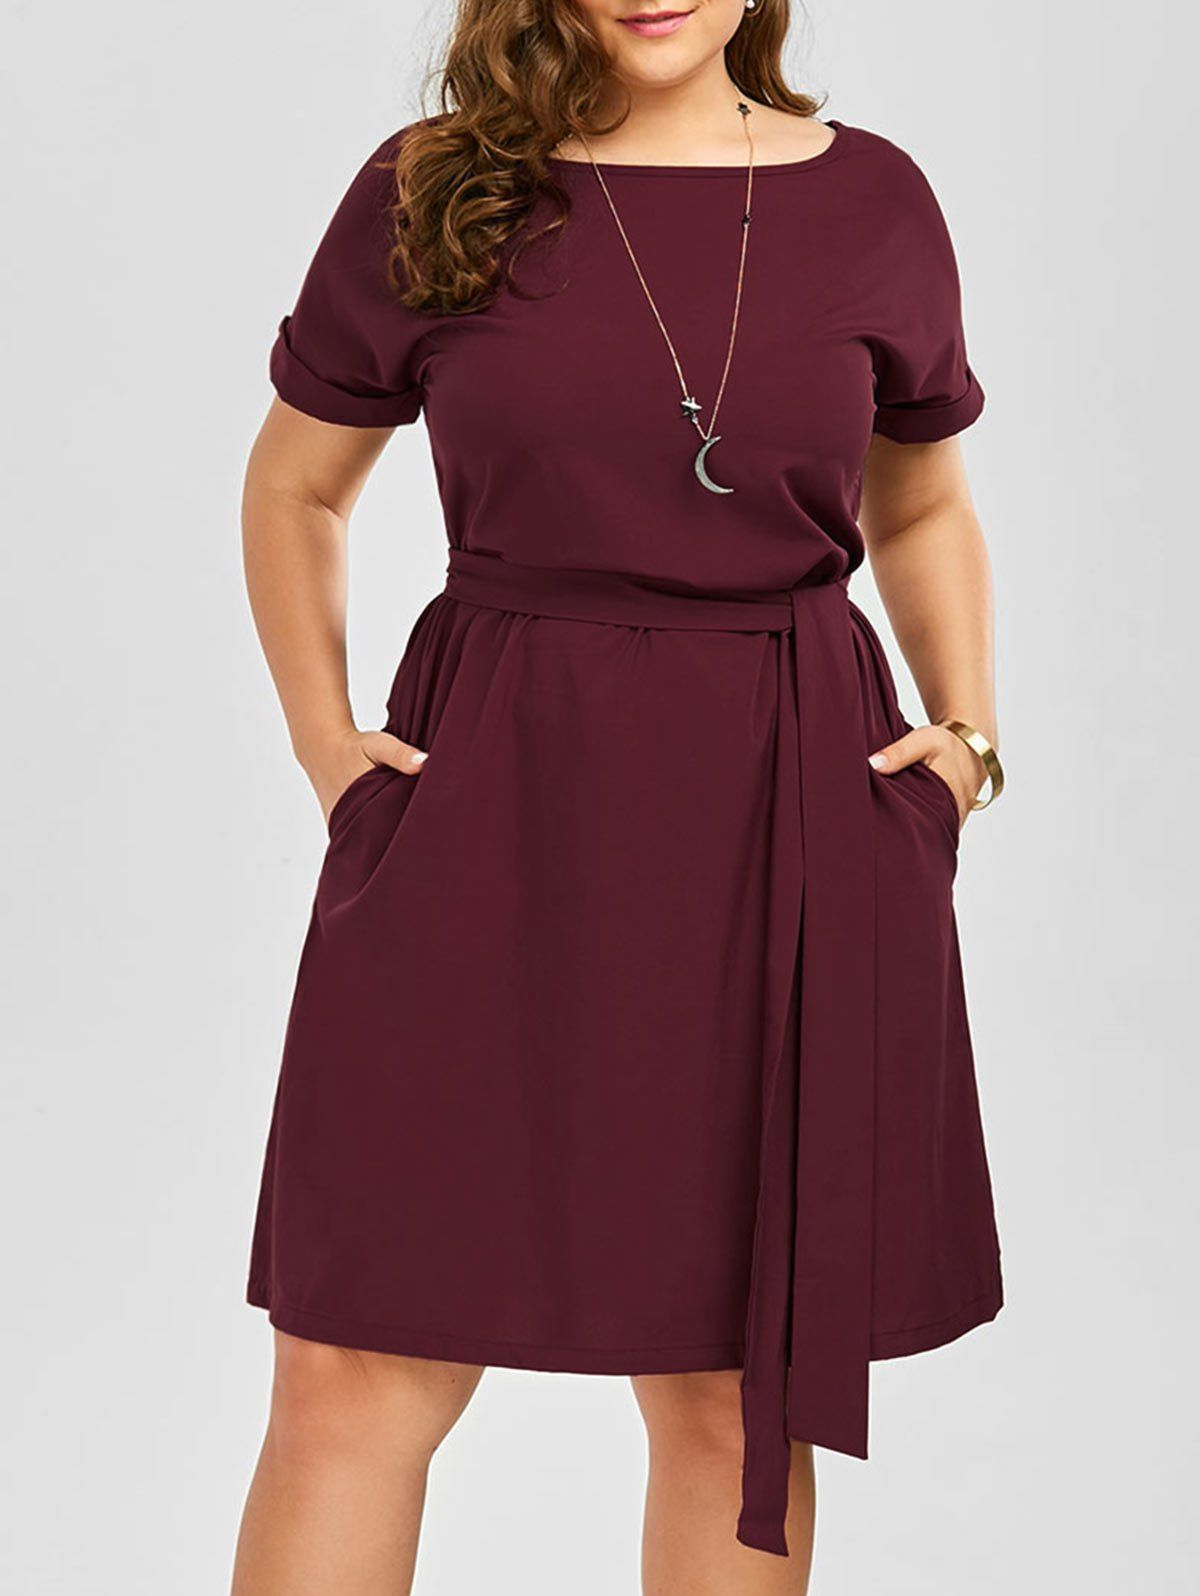 plus size belted knee length dress with pockets in wine red